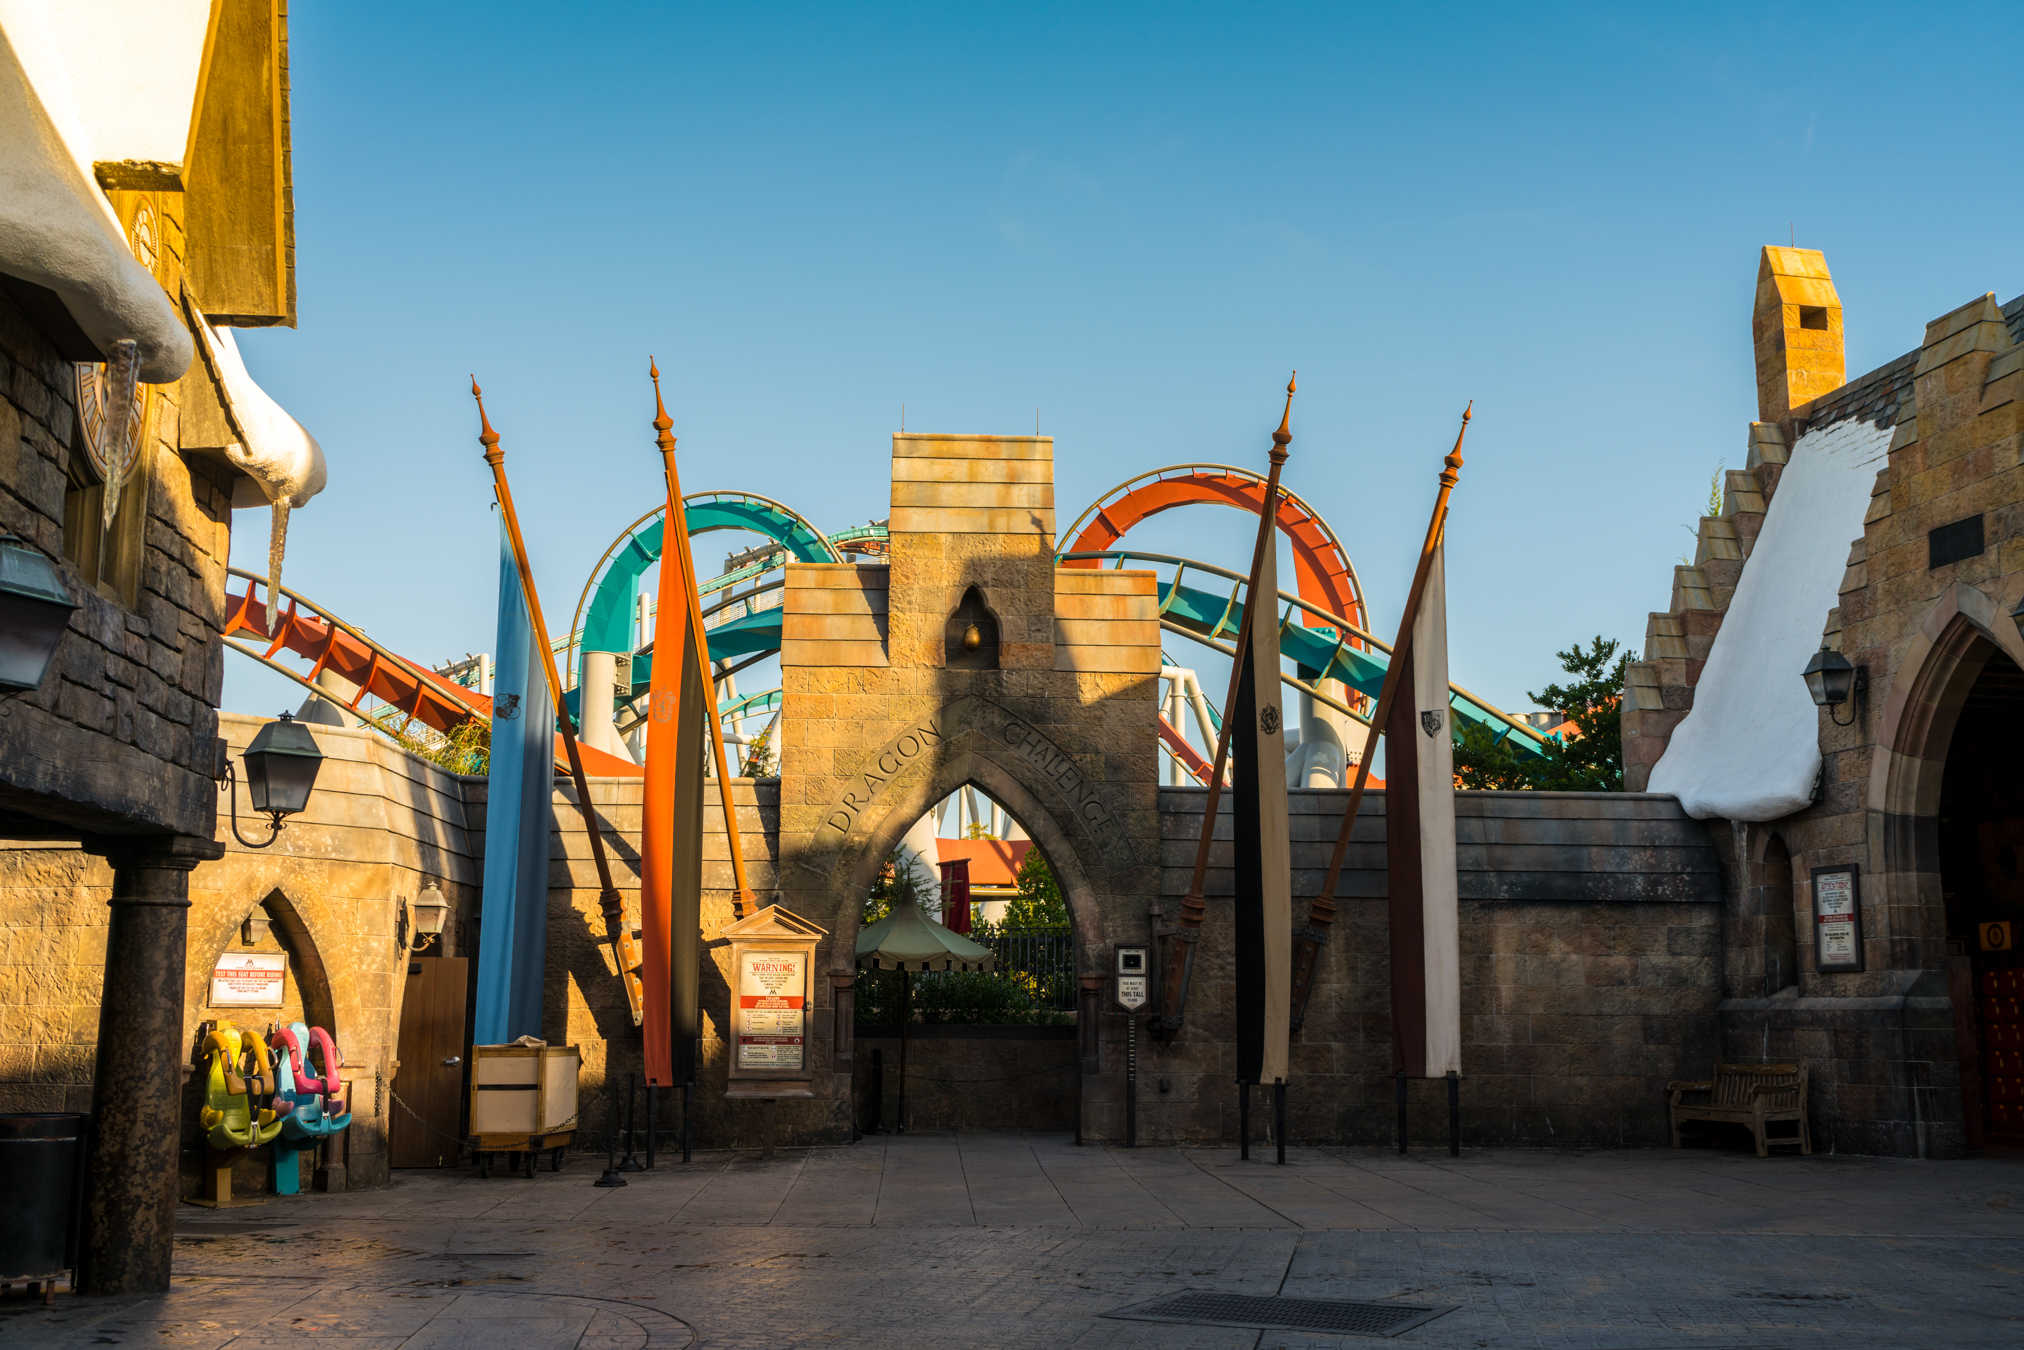 Harry Potter: 4 attractions that could replace Dragon Challenge